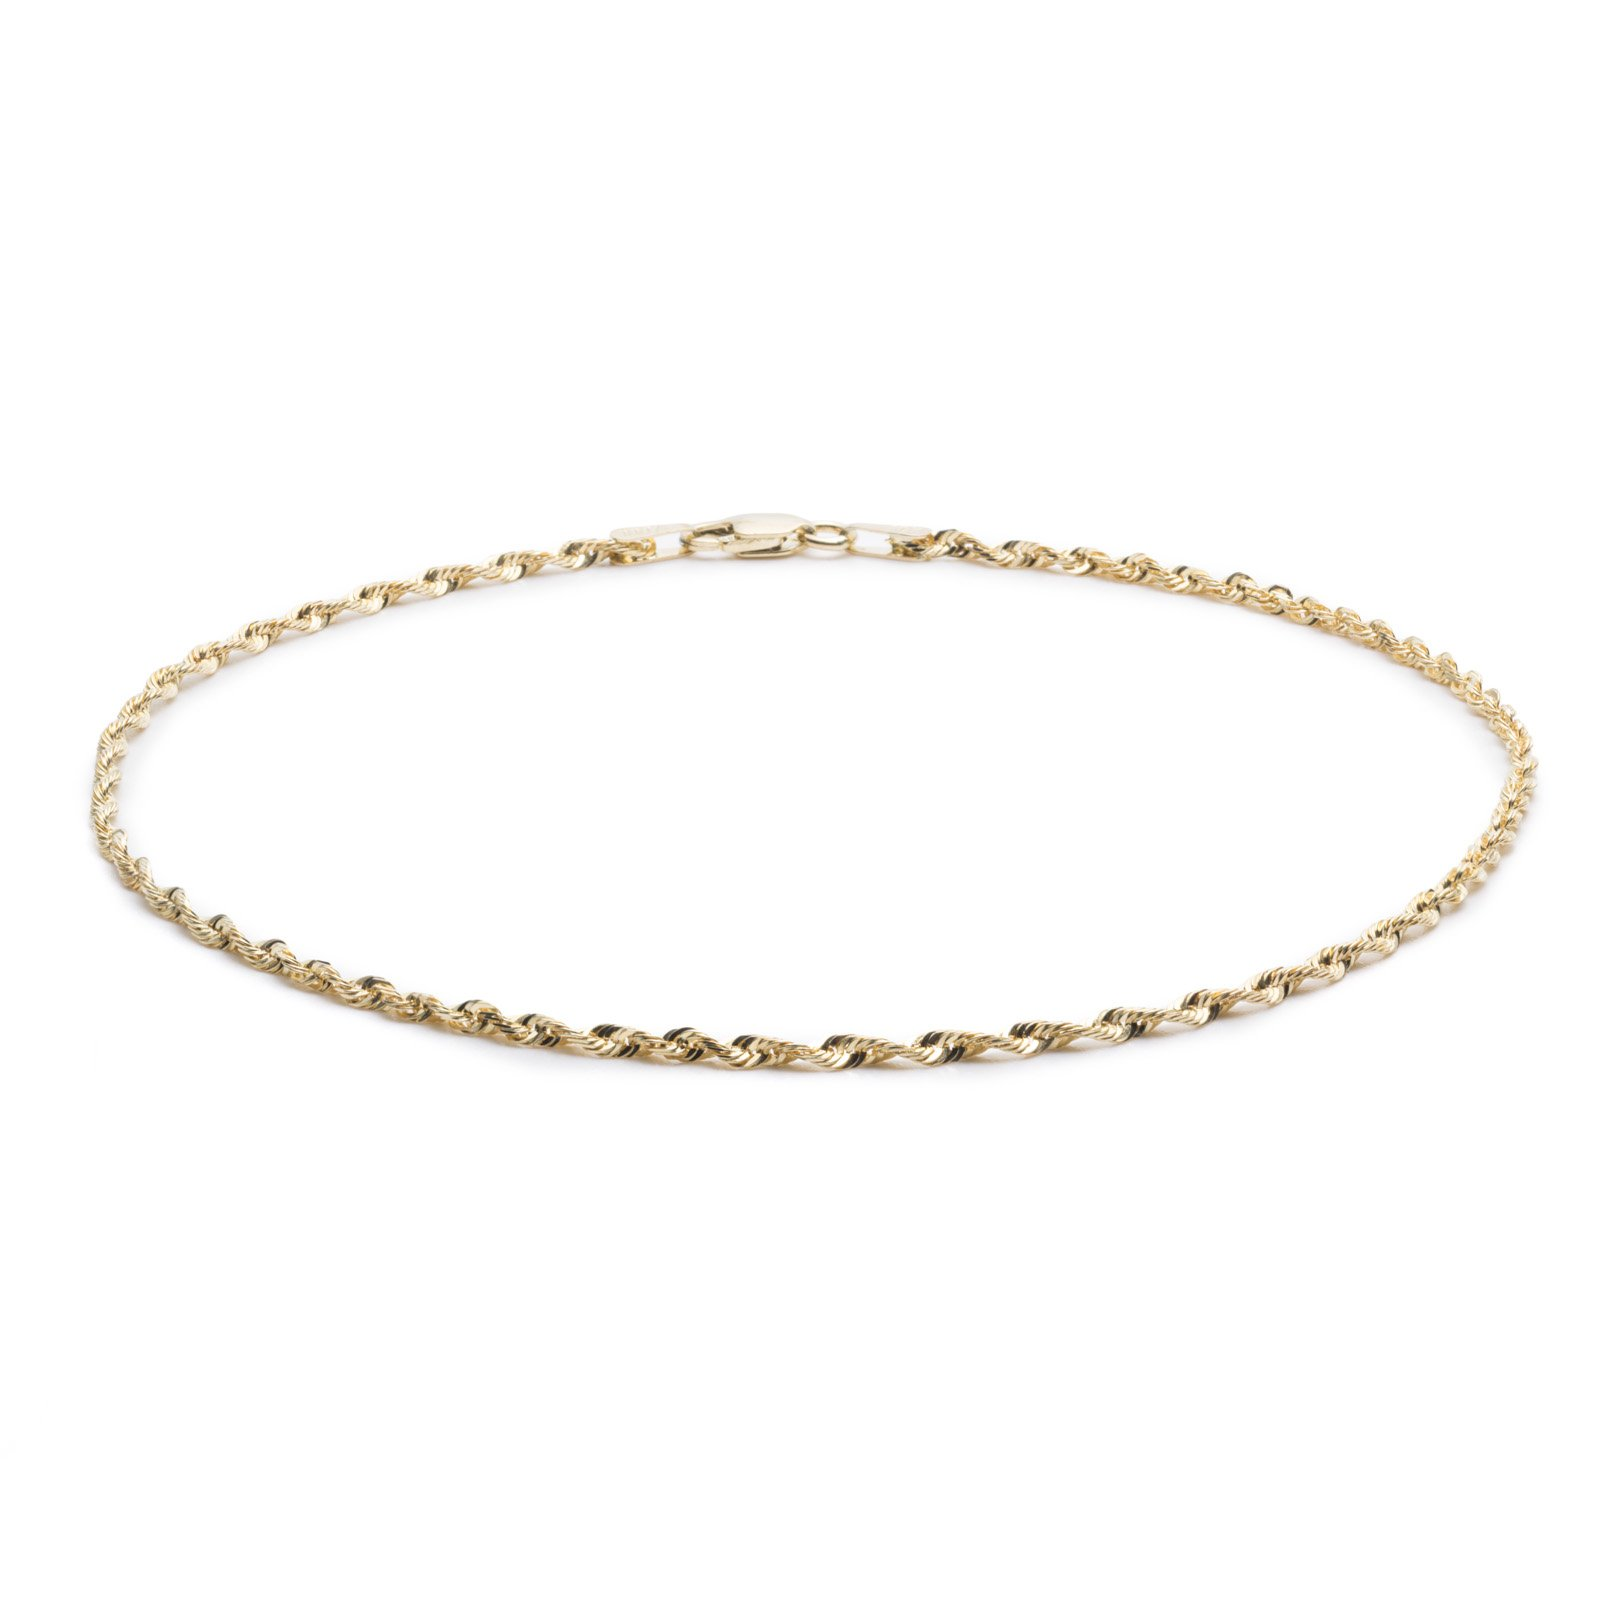 9 Inch 10k Yellow Gold Solid Extra Light Diamond Cut Rope Chain Anklet for Women and Girls, 2.5mm